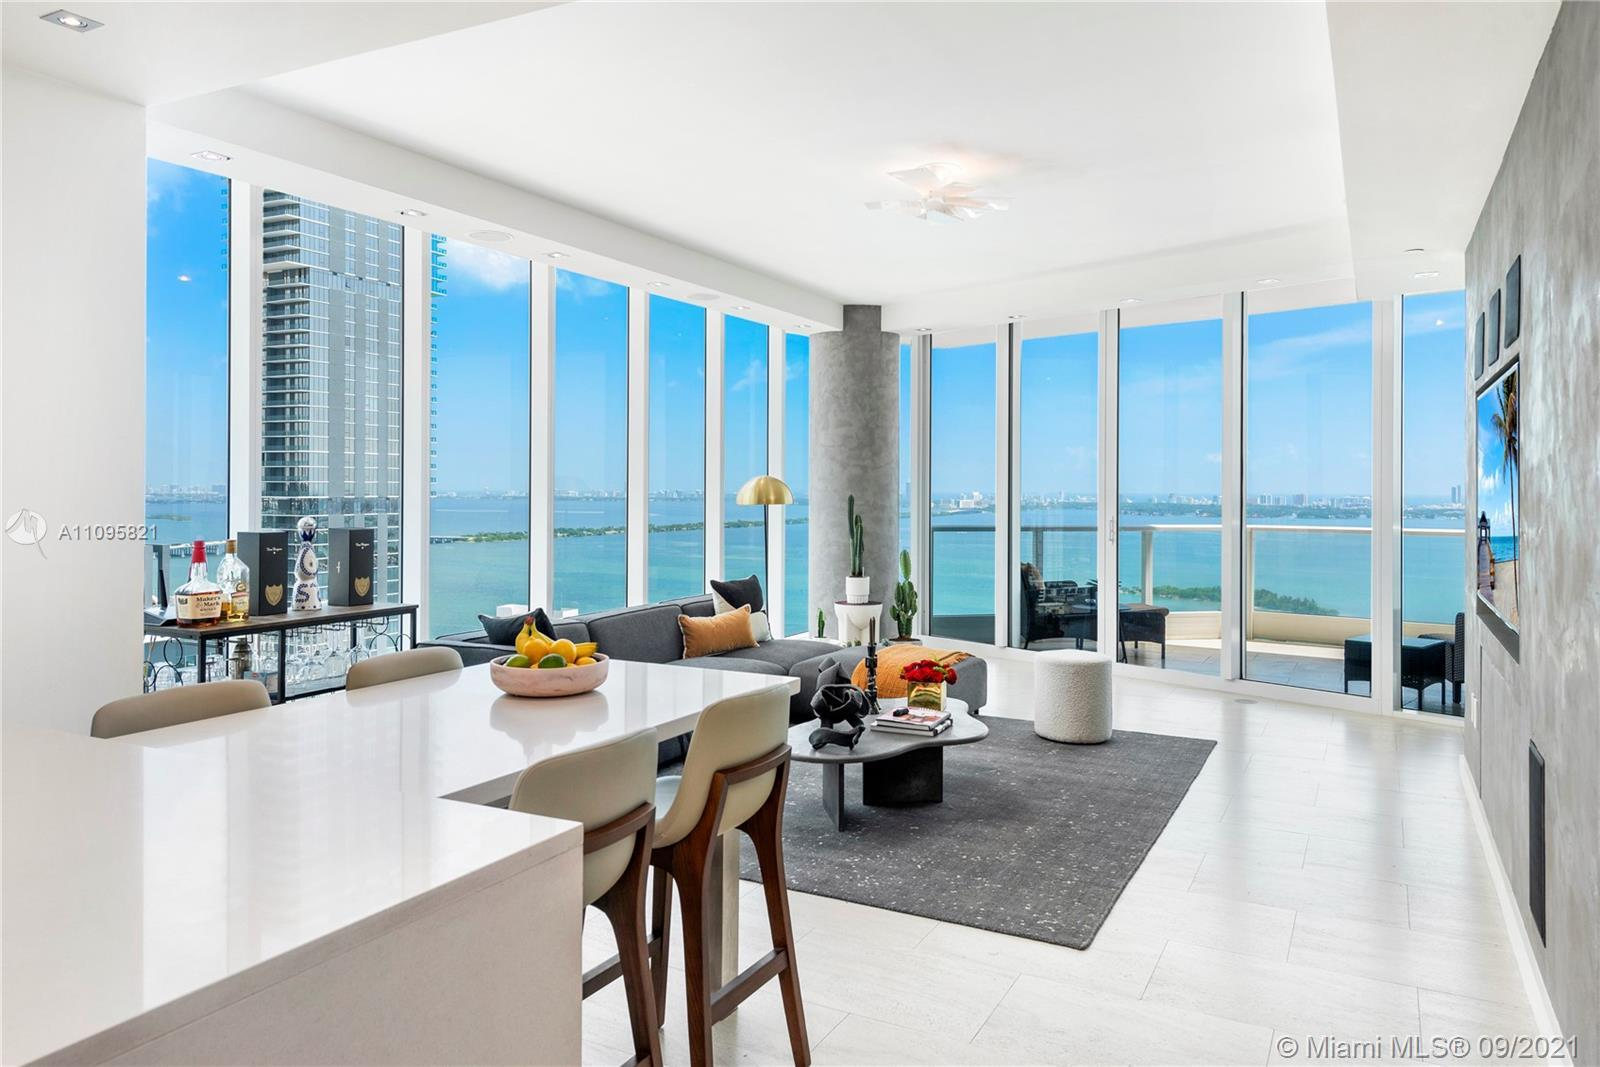 Sleek & Modern, and MOVE IN READY this 2 Bedroom / 2.5 Bathroom corner condo in the luxurious Paramo